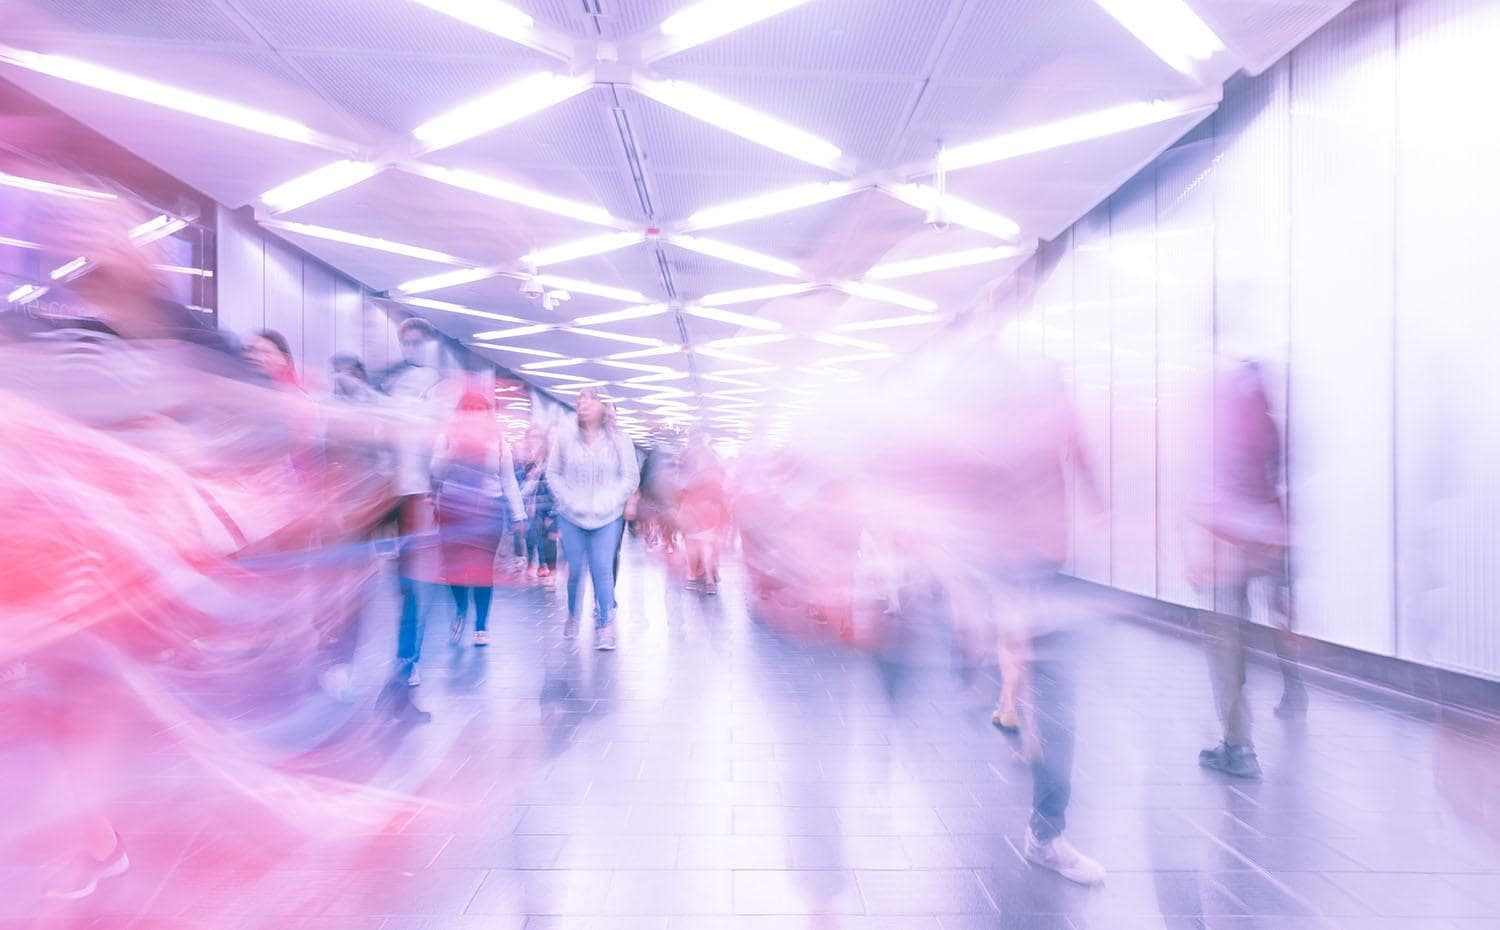 Time lapse photo of commuters on subway